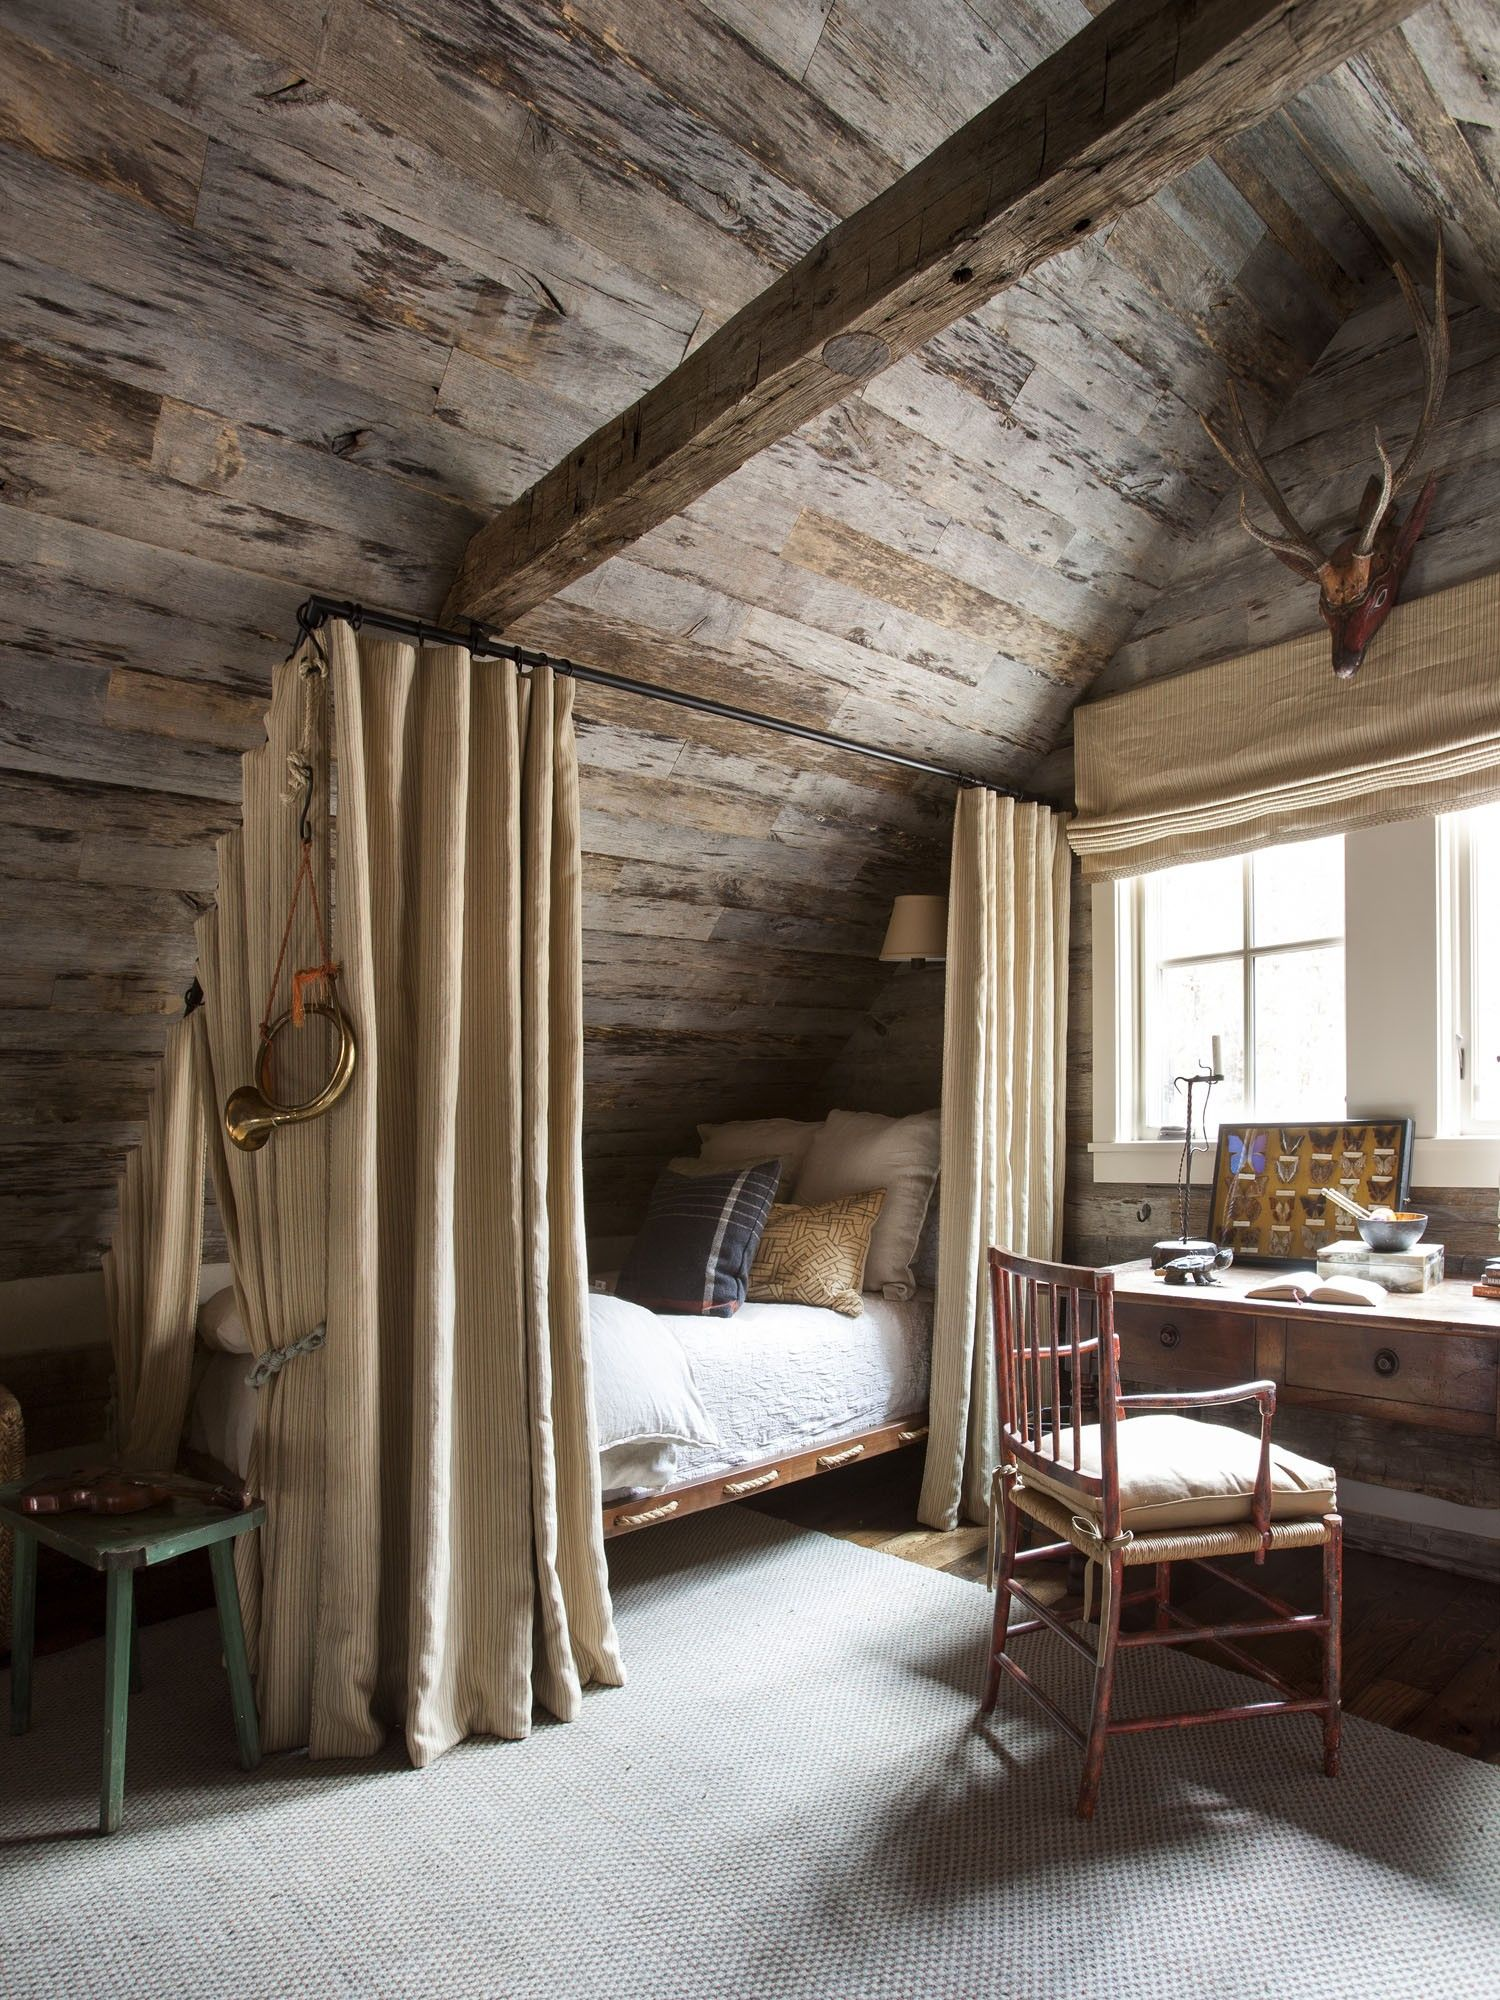 Curtains around a bed on a slope